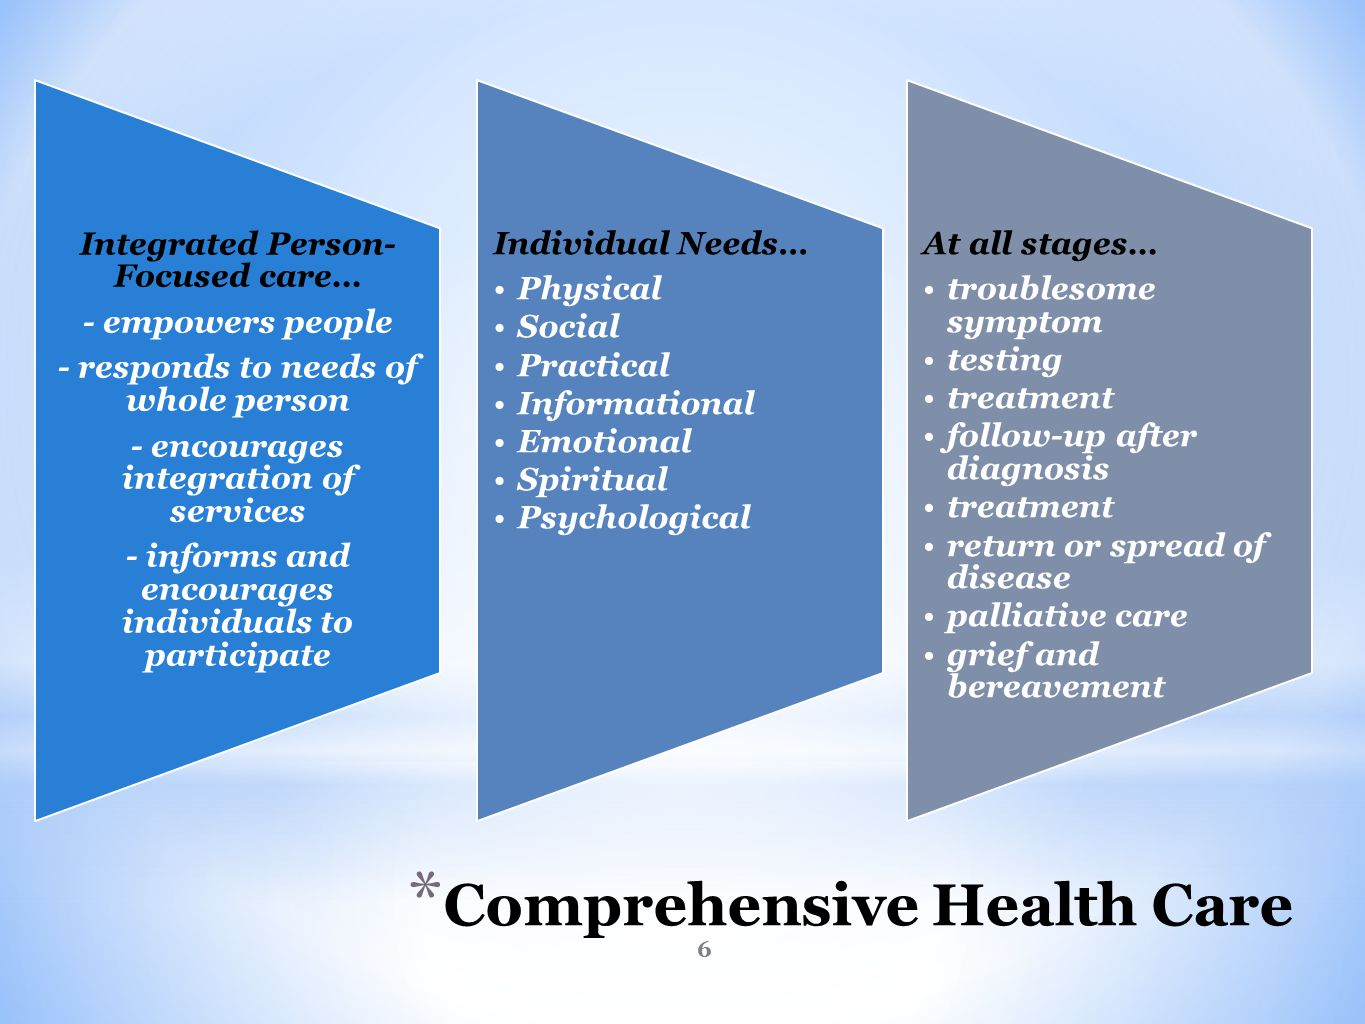 * Comprehensive Health Care Integrated Person- Focused care… - empowers people - responds to needs of whole person - encourages integration of services - informs and encourages individuals to participate Individual Needs… Physical Social Practical Informational Emotional Spiritual Psychological At all stages… troublesome symptom testing treatment follow-up after diagnosis treatment return or spread of disease palliative care grief and bereavement 6